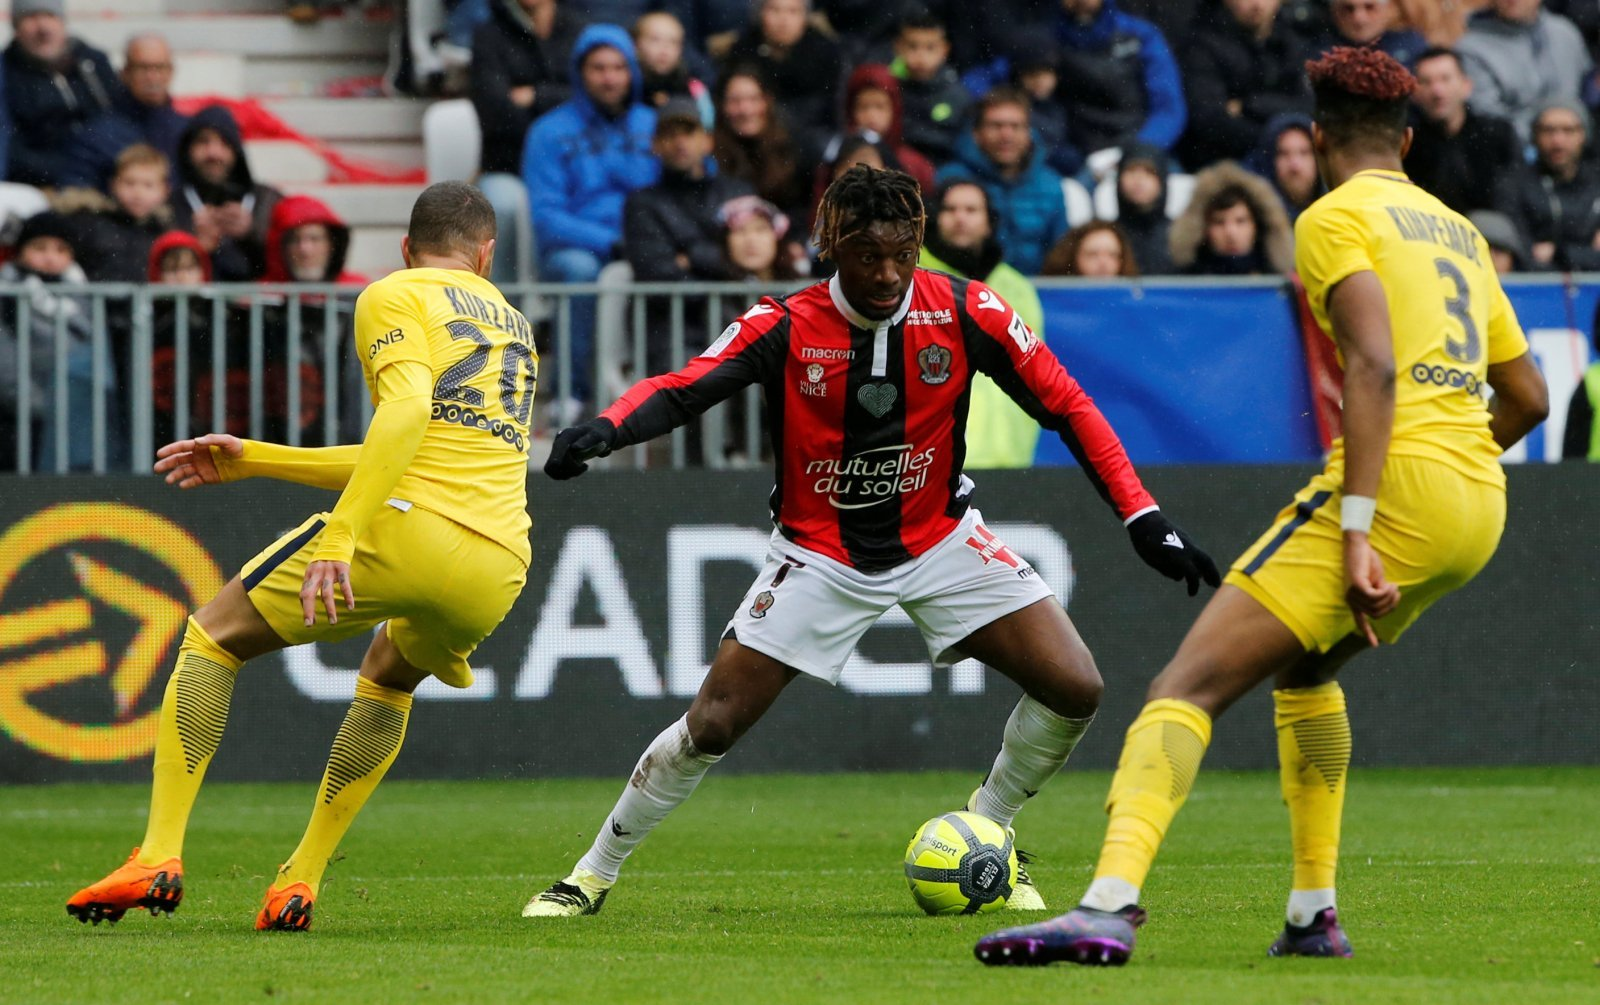 Crystal Palace: Eagles face competition from Watford for Allan Saint-Maximin